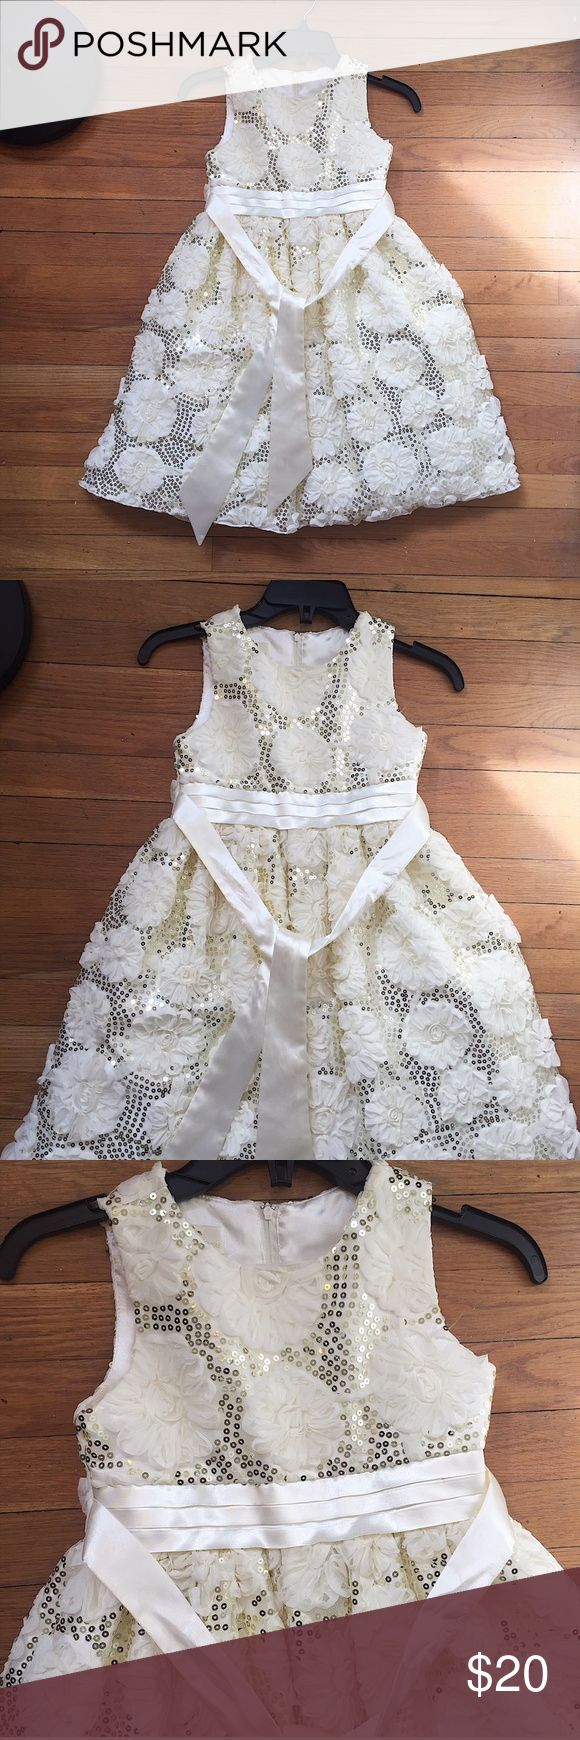 Girls American Princess Floral Sequin Dress Sz 8 Perfect for Easter, recitals, weddings or any special occasion.   American Princess party dress Girls size 8 Features tulle underneath, tie back, zipper closure, and gold sequins. Dress and zipper in perfect condition - no stains, blemishes or tears  📷 Please see all photos - we do out best to accurately capture condition, measurements & all blemishes in our photos 📷   🌼 Smoke/pet free home 🌼  🌸 All clothing is freshly laundered before…